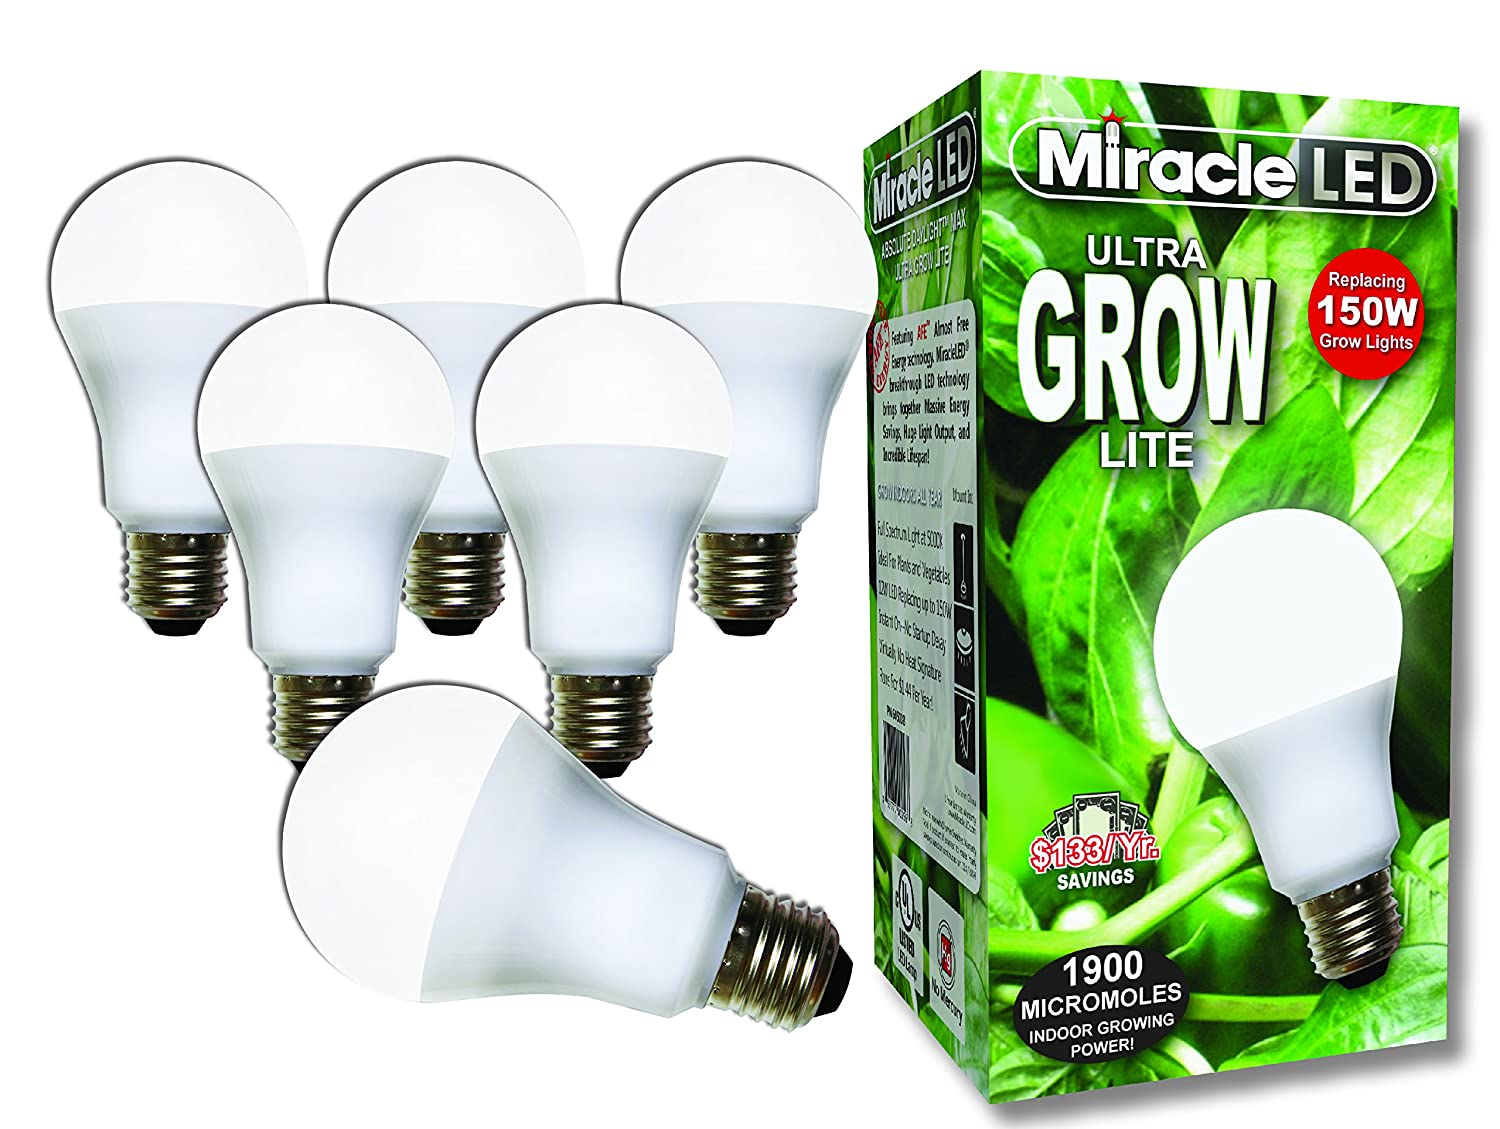 Miracle LED Commercial Hydroponic Ultra Grow Lite - Replaces up to 150W - Daylight White Full Spectrum LED Indoor Plant Growing Light Bulb For DIY Horticulture & Indoor Gardening (604289) 6 Pack